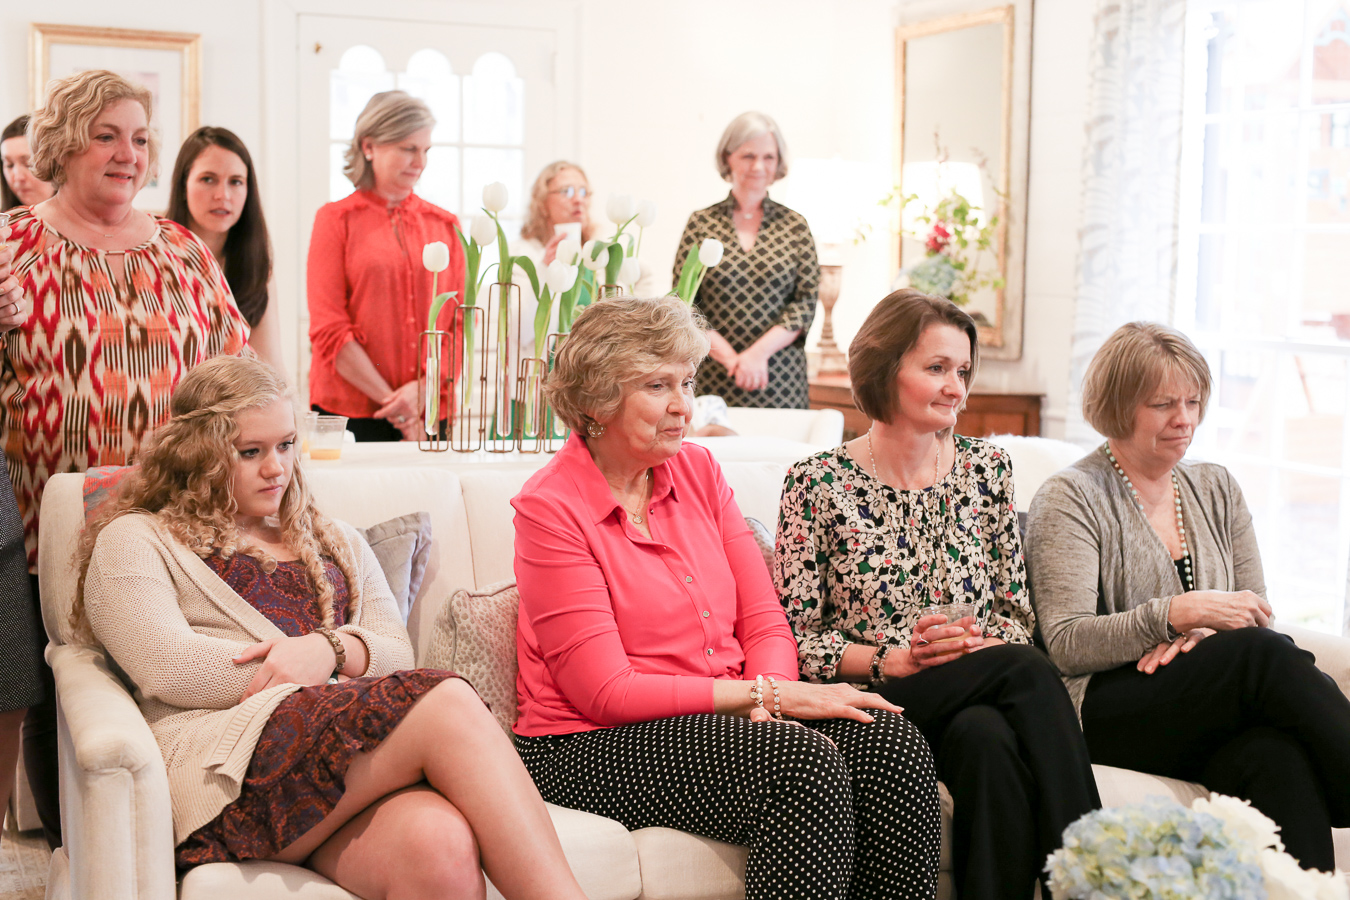 Guests Watching Gift Opening At Babyshower